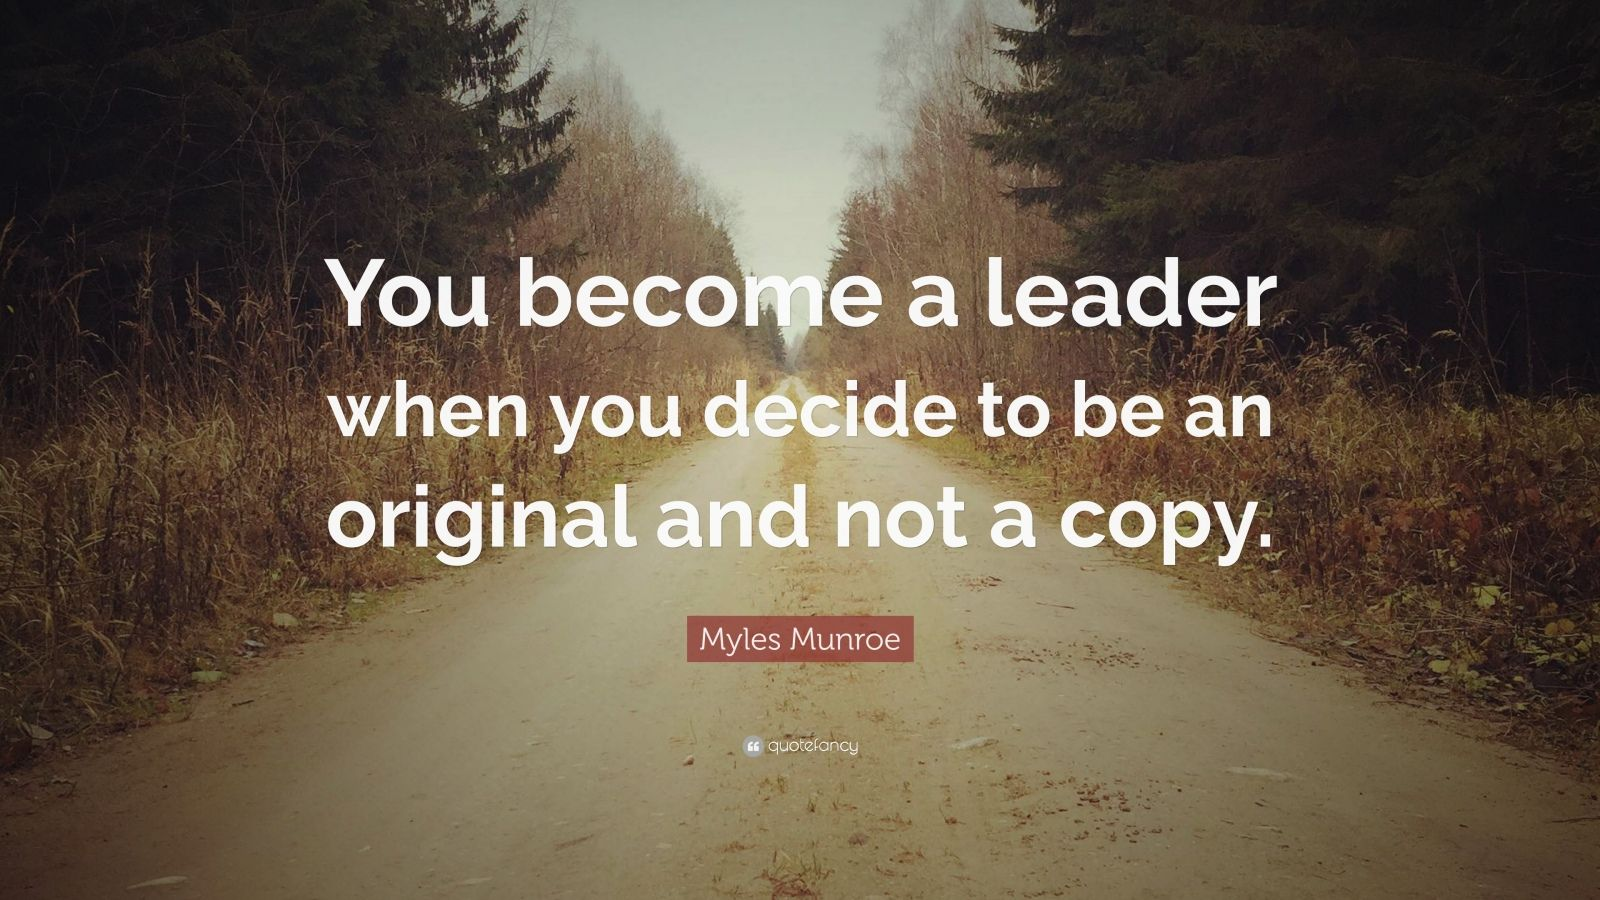 Myles Munroe Quote: You become a leader when you decide